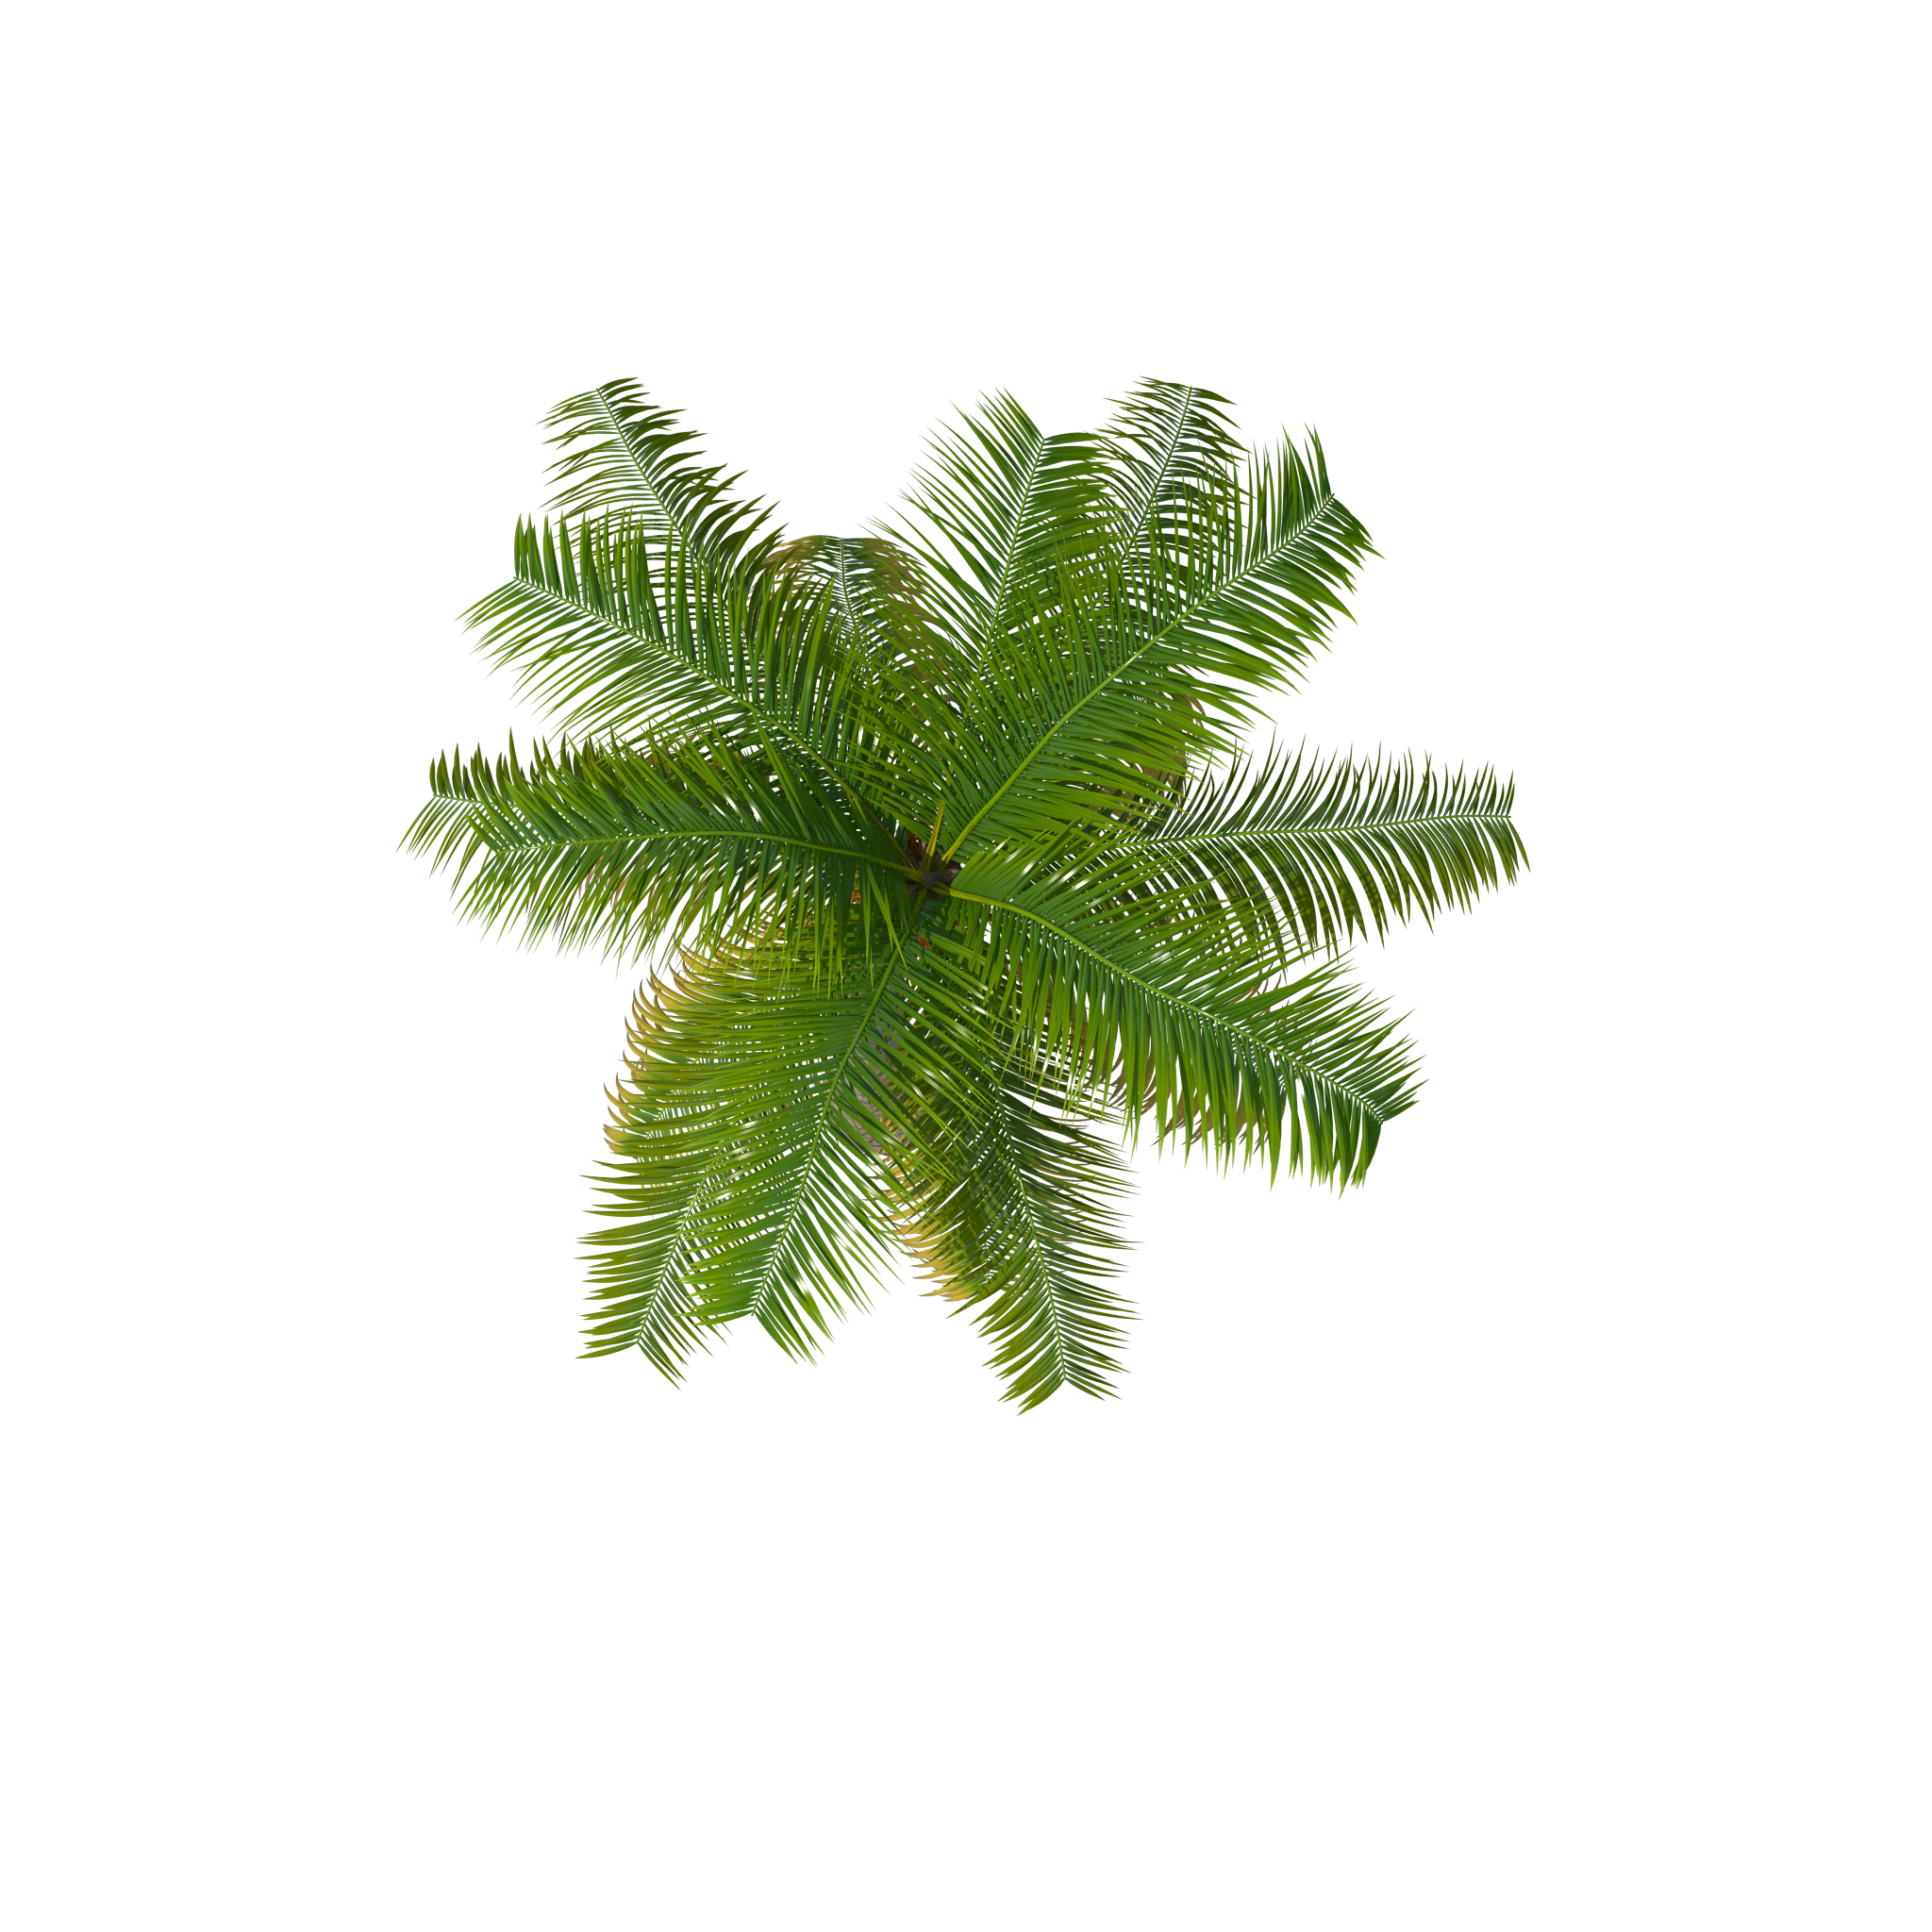 Palm tree top view png. Image purepng free transparent